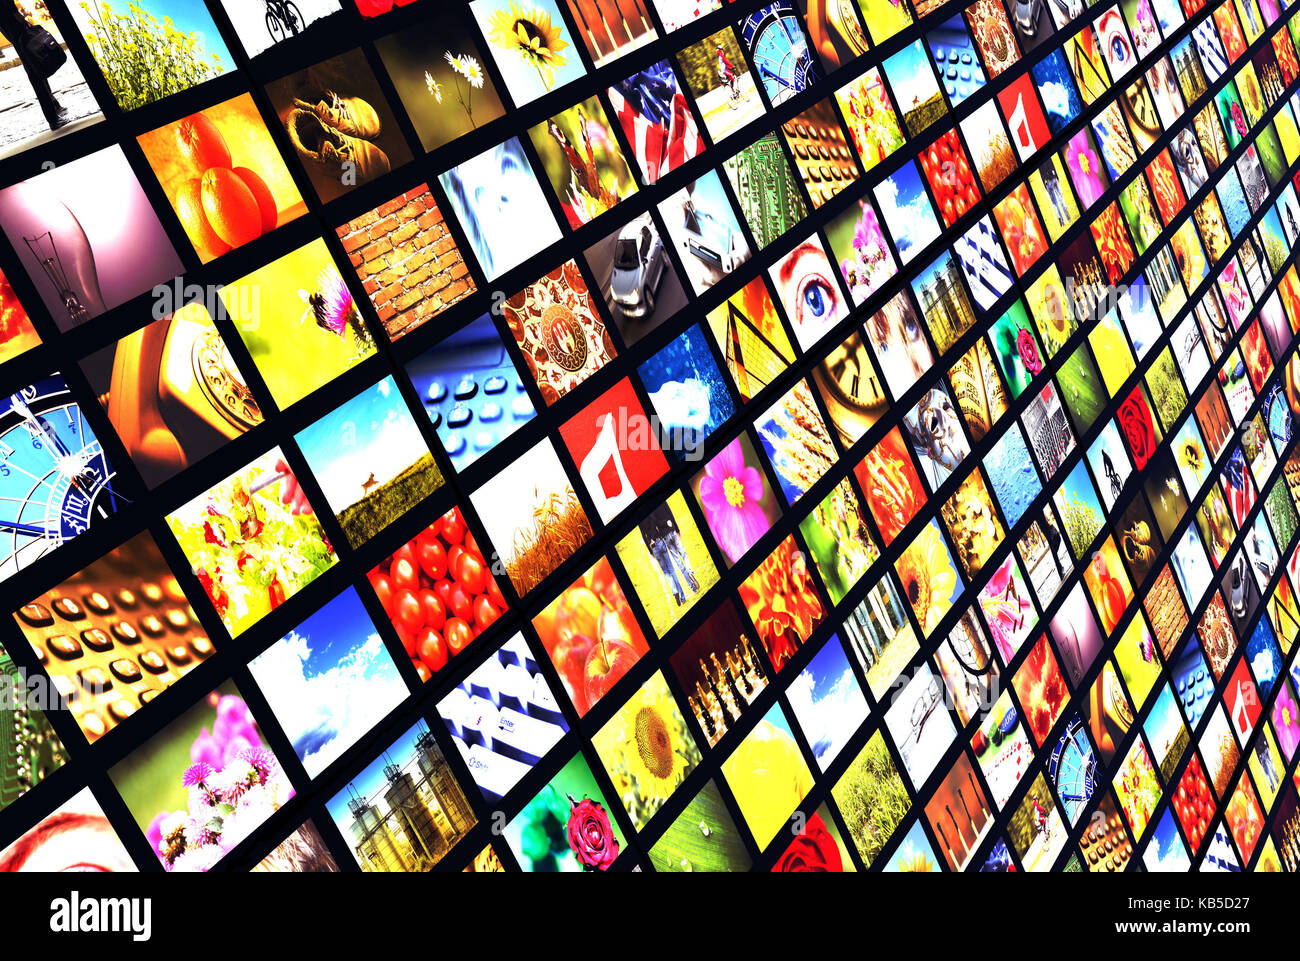 panels with many images, digital television, new media and broadcasting concept - Stock Image